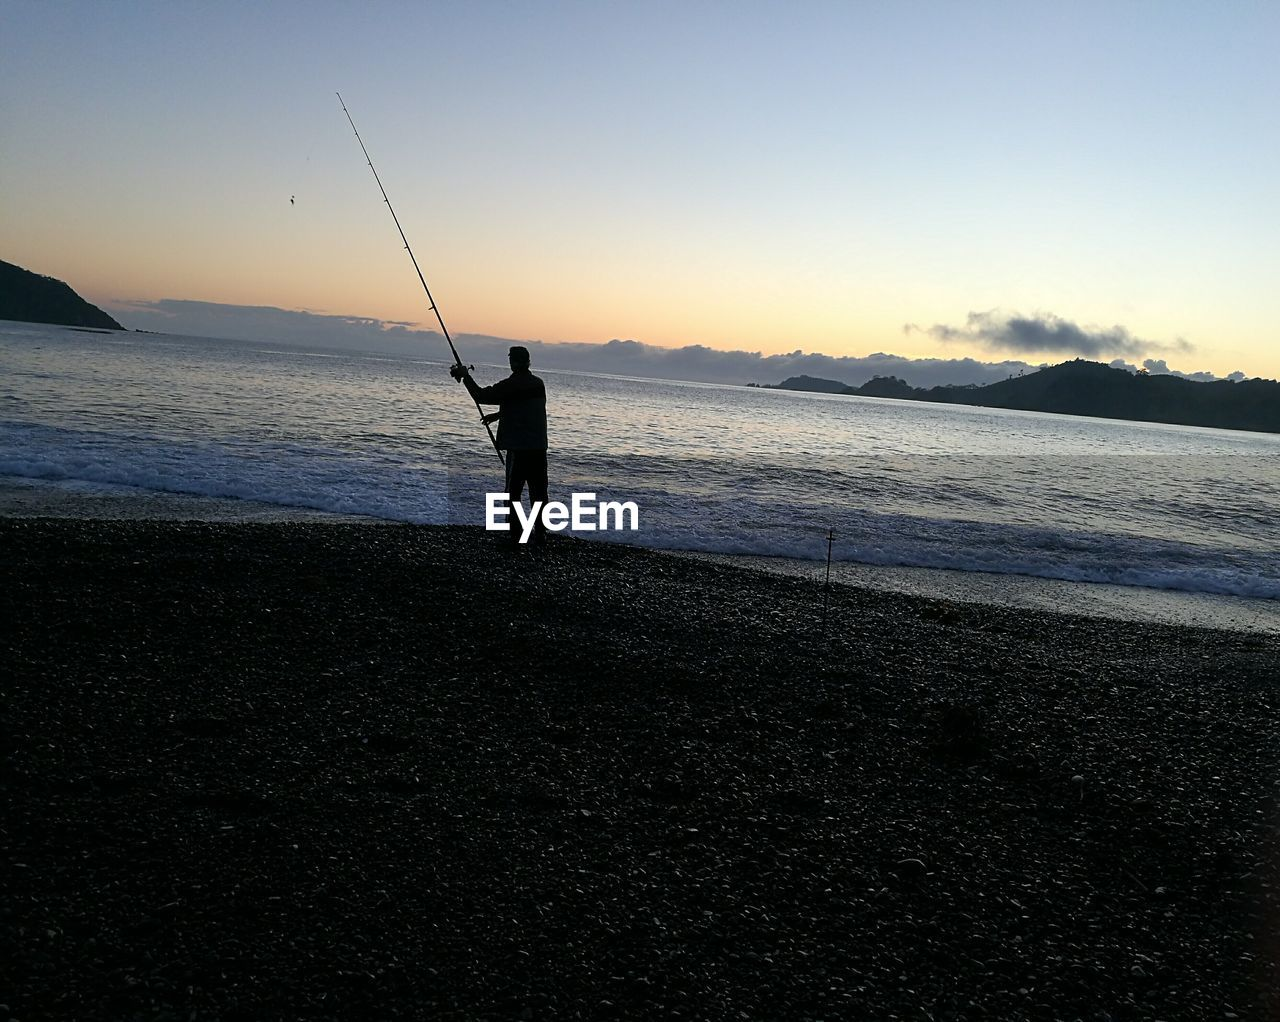 fishing, sea, fishing rod, silhouette, sunset, fishing pole, water, standing, tranquil scene, real people, full length, one person, beauty in nature, nature, weekend activities, scenics, leisure activity, tranquility, holding, beach, fishing tackle, horizon over water, men, outdoors, sky, lifestyles, vacations, clear sky, day, adult, people